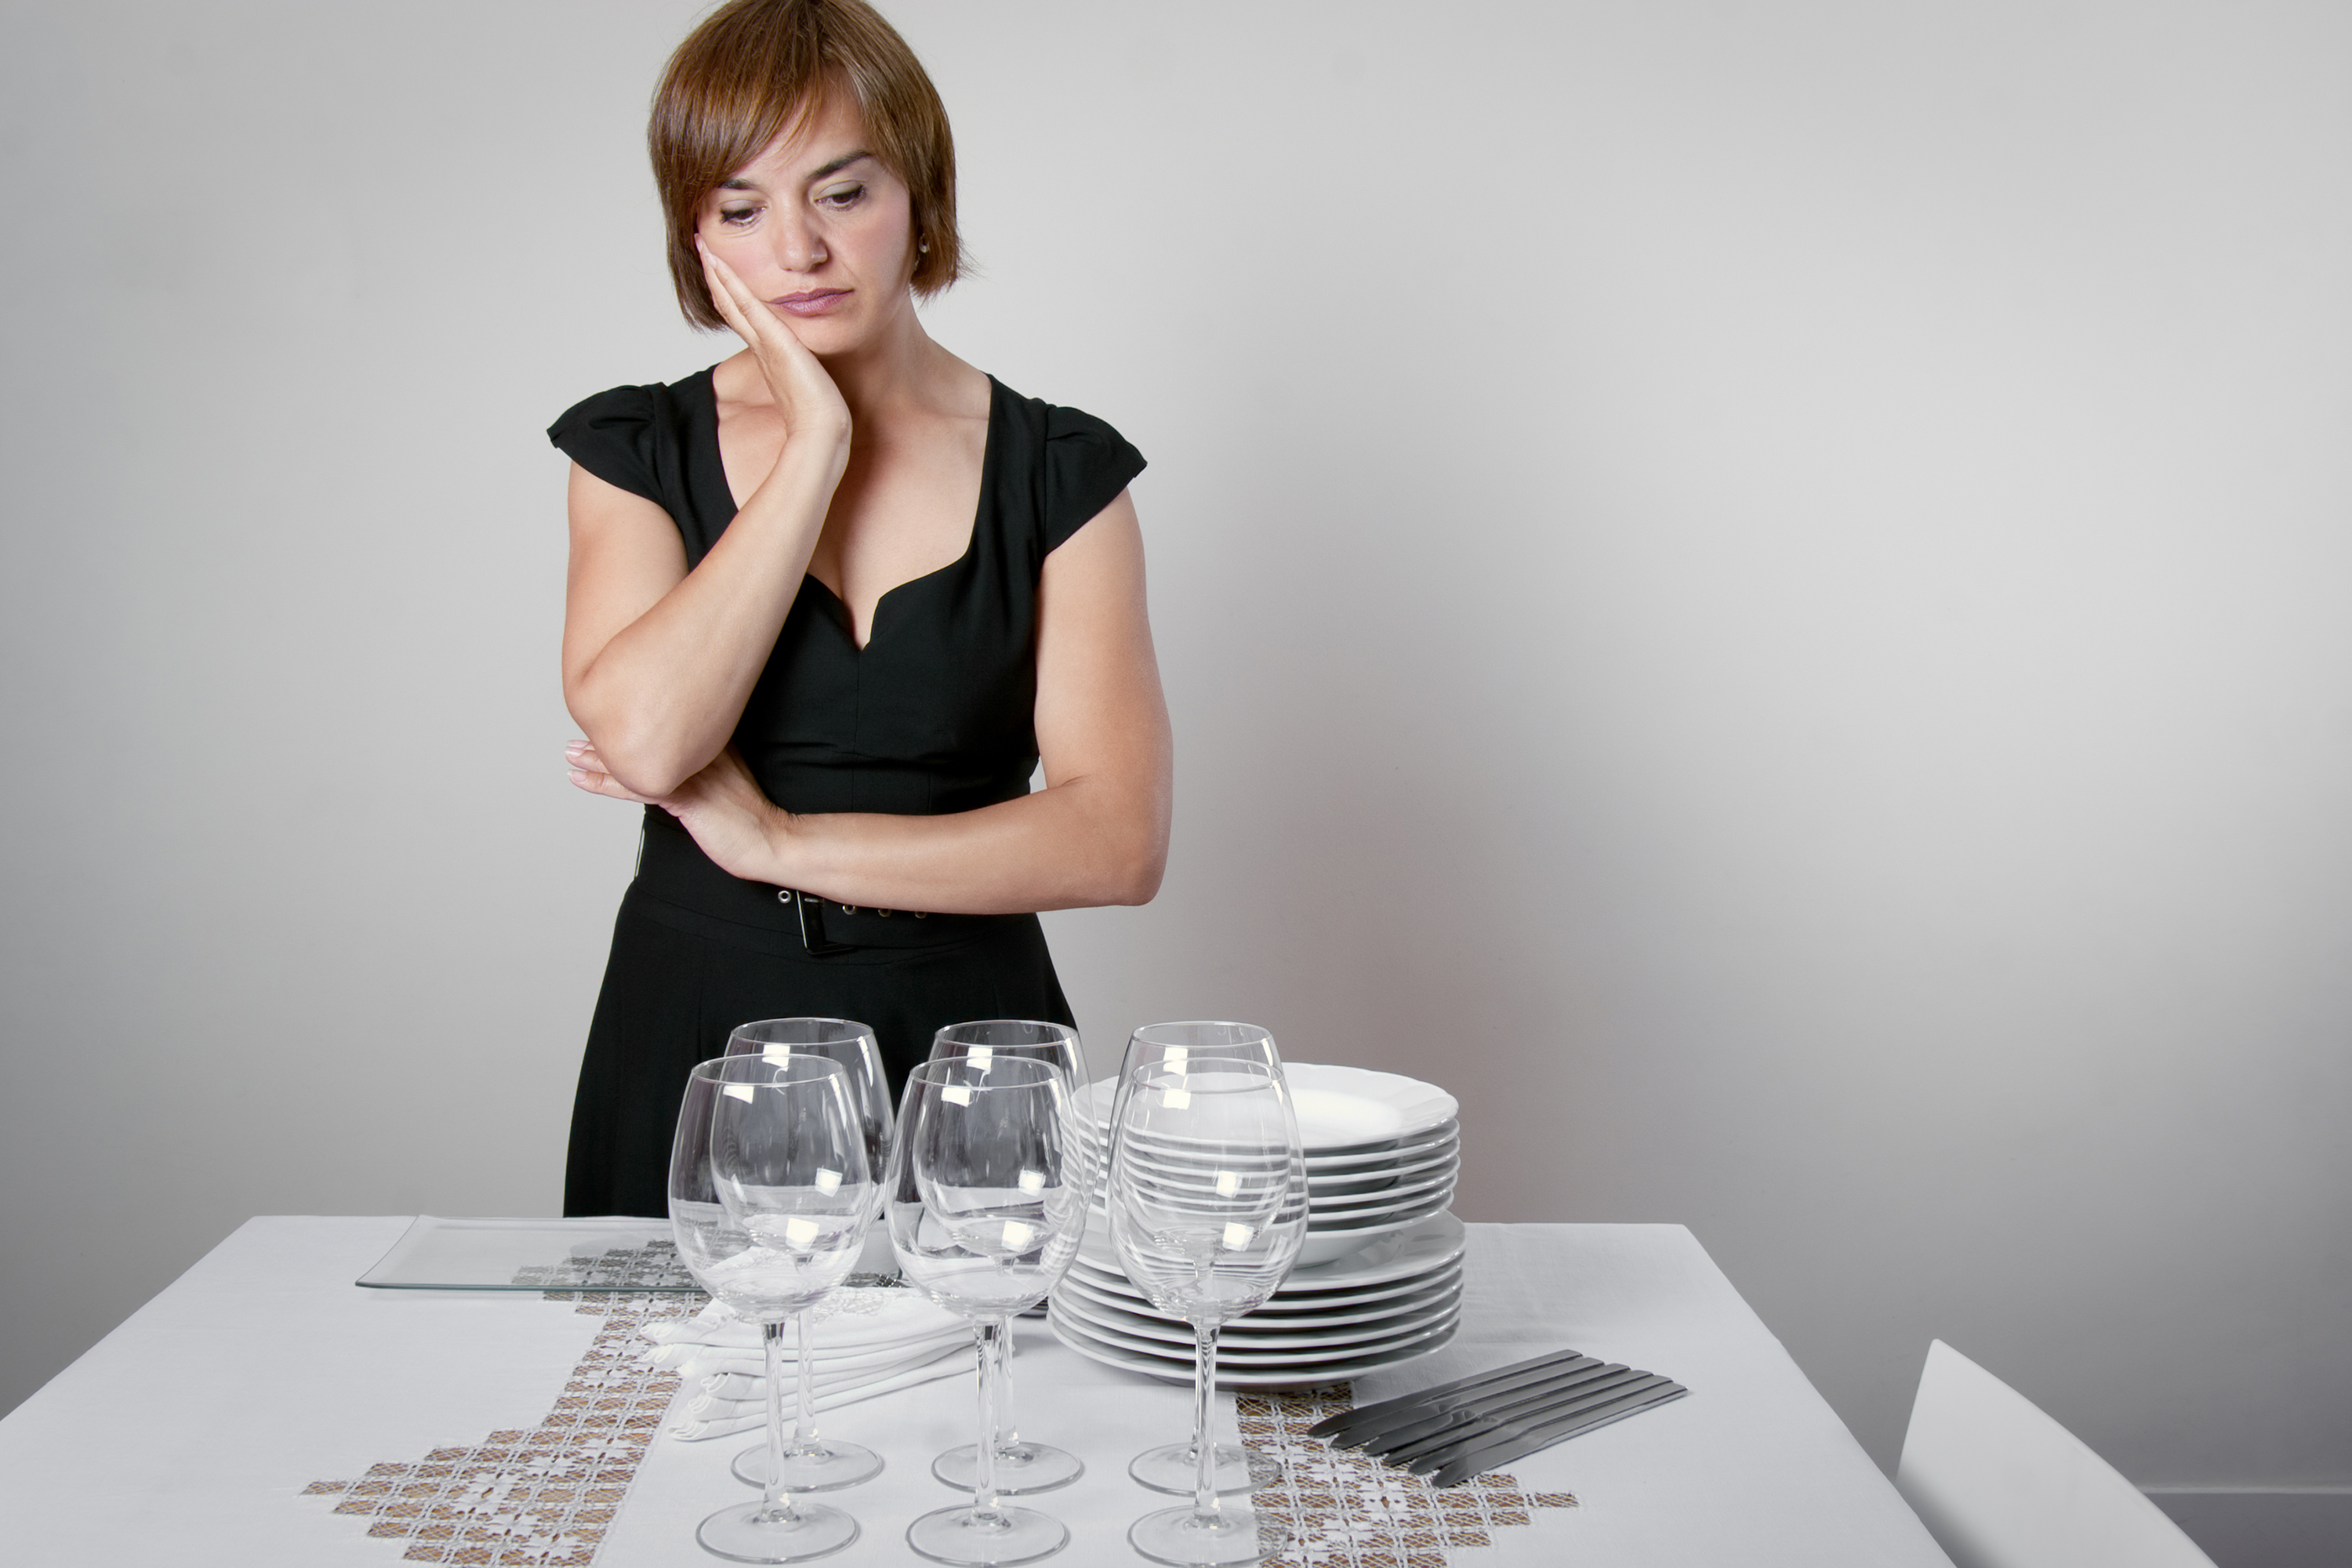 Worried woman setting the table for a celebration. (ASIFE, Getty Images)